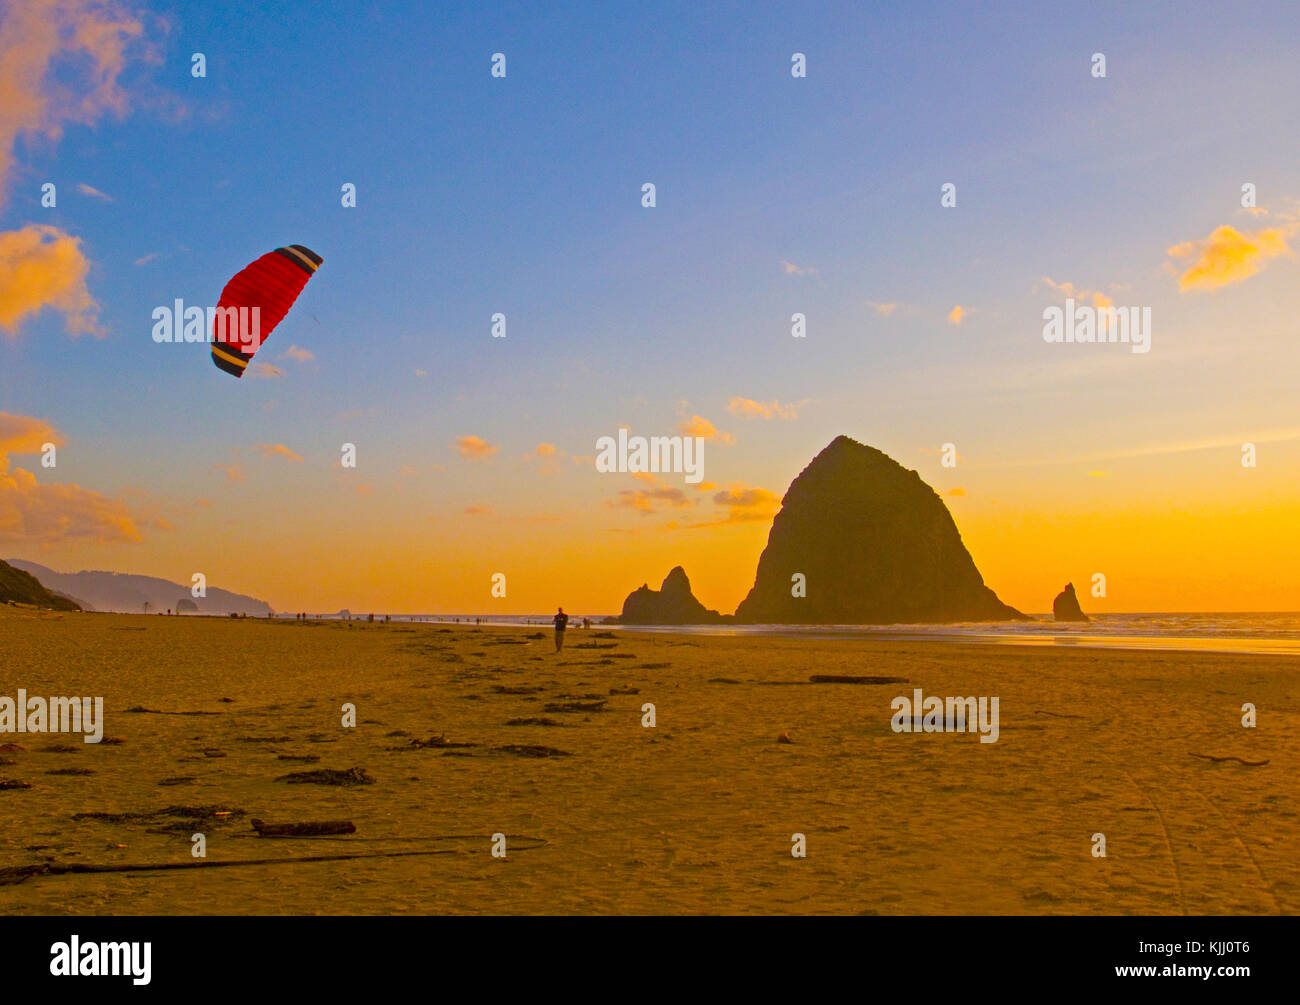 Kite flier on Cannon Beach with Haystack Rock at sunset on Oregon coast. - Stock Image